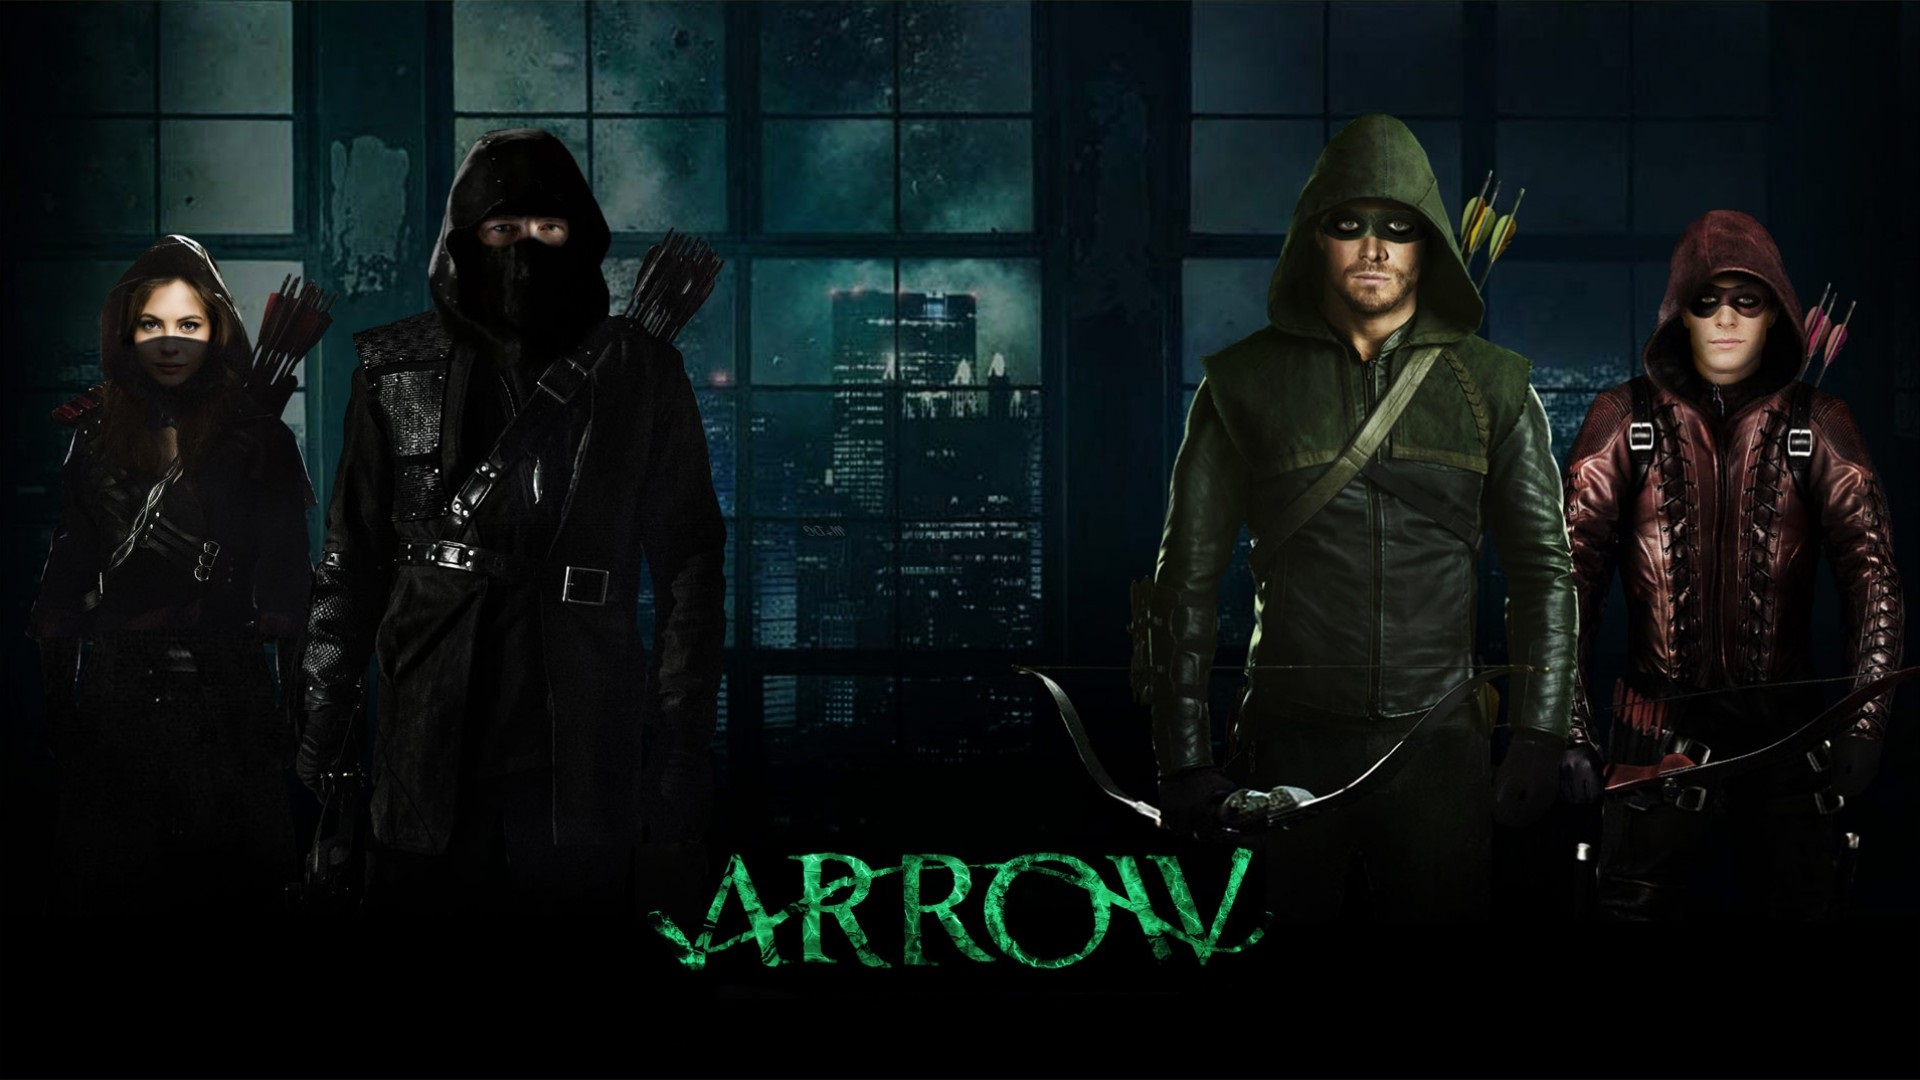 Arrow 8x9 - Green Arrow and the Canaries